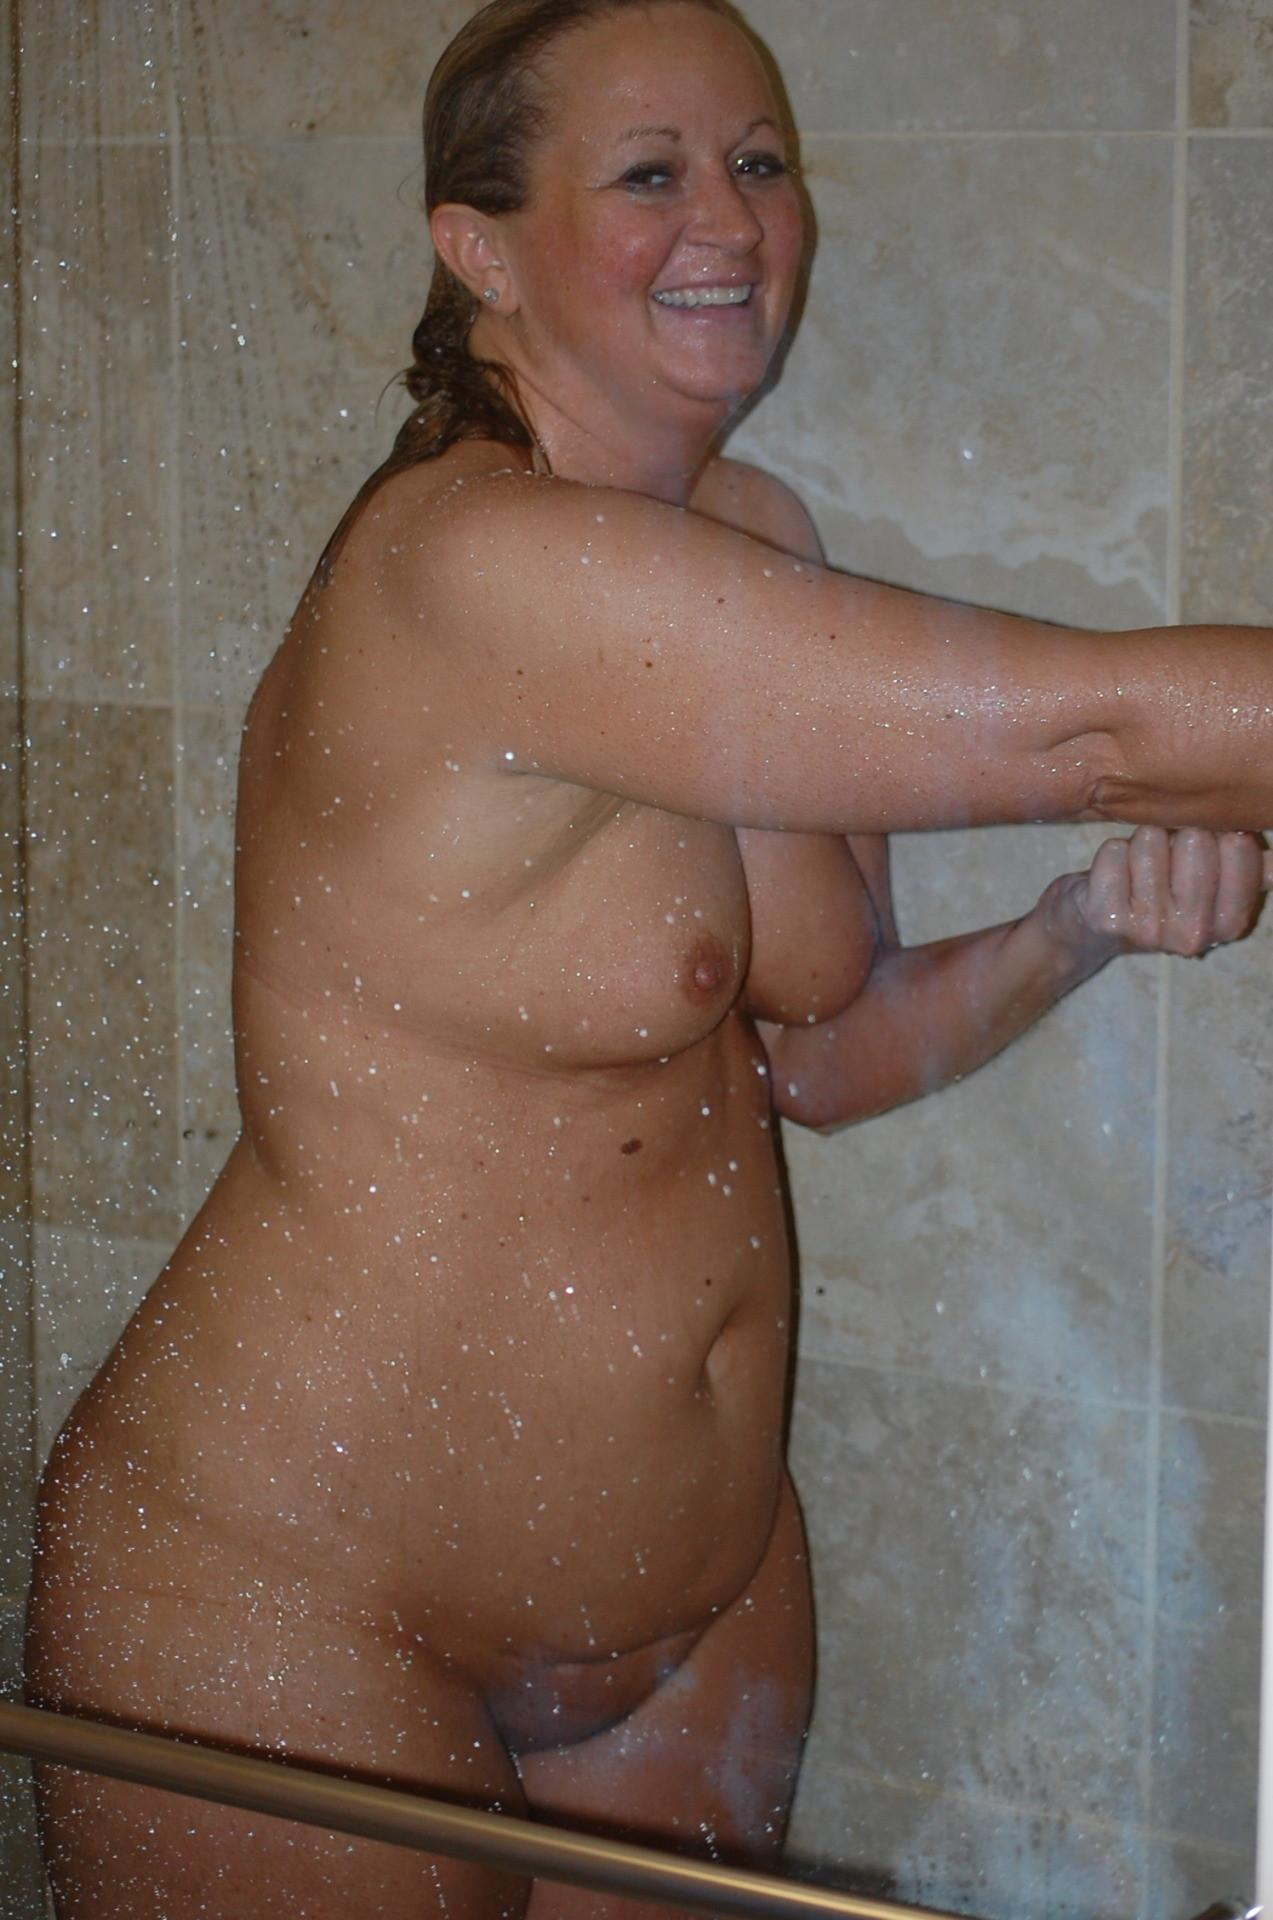 Chubby housewife showering her massive body. Plump MILF whips out her hooters as she strips for a shower